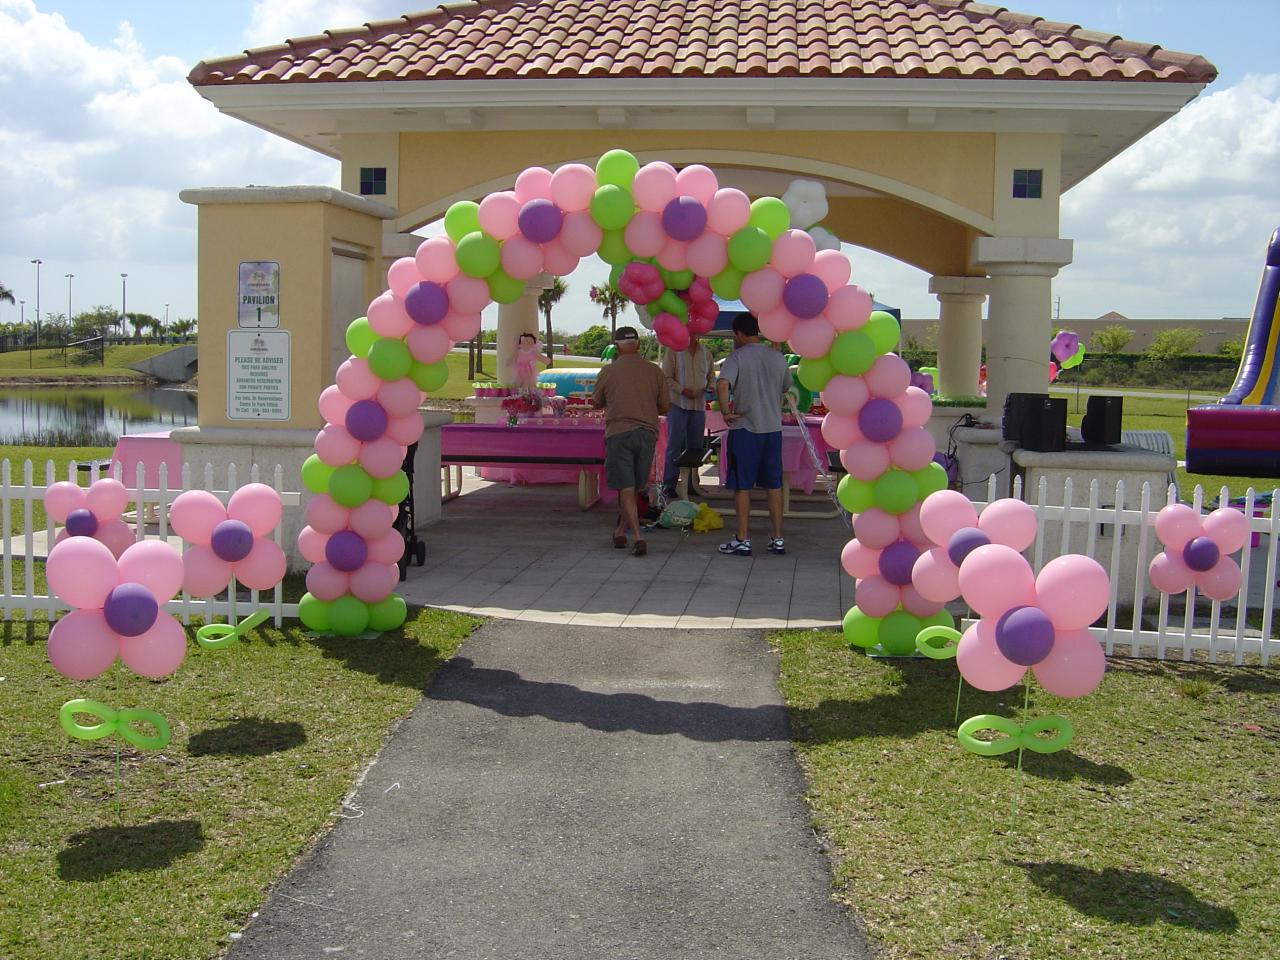 Balloon ideas on pinterest balloons balloon columns and for Arch balloons decoration